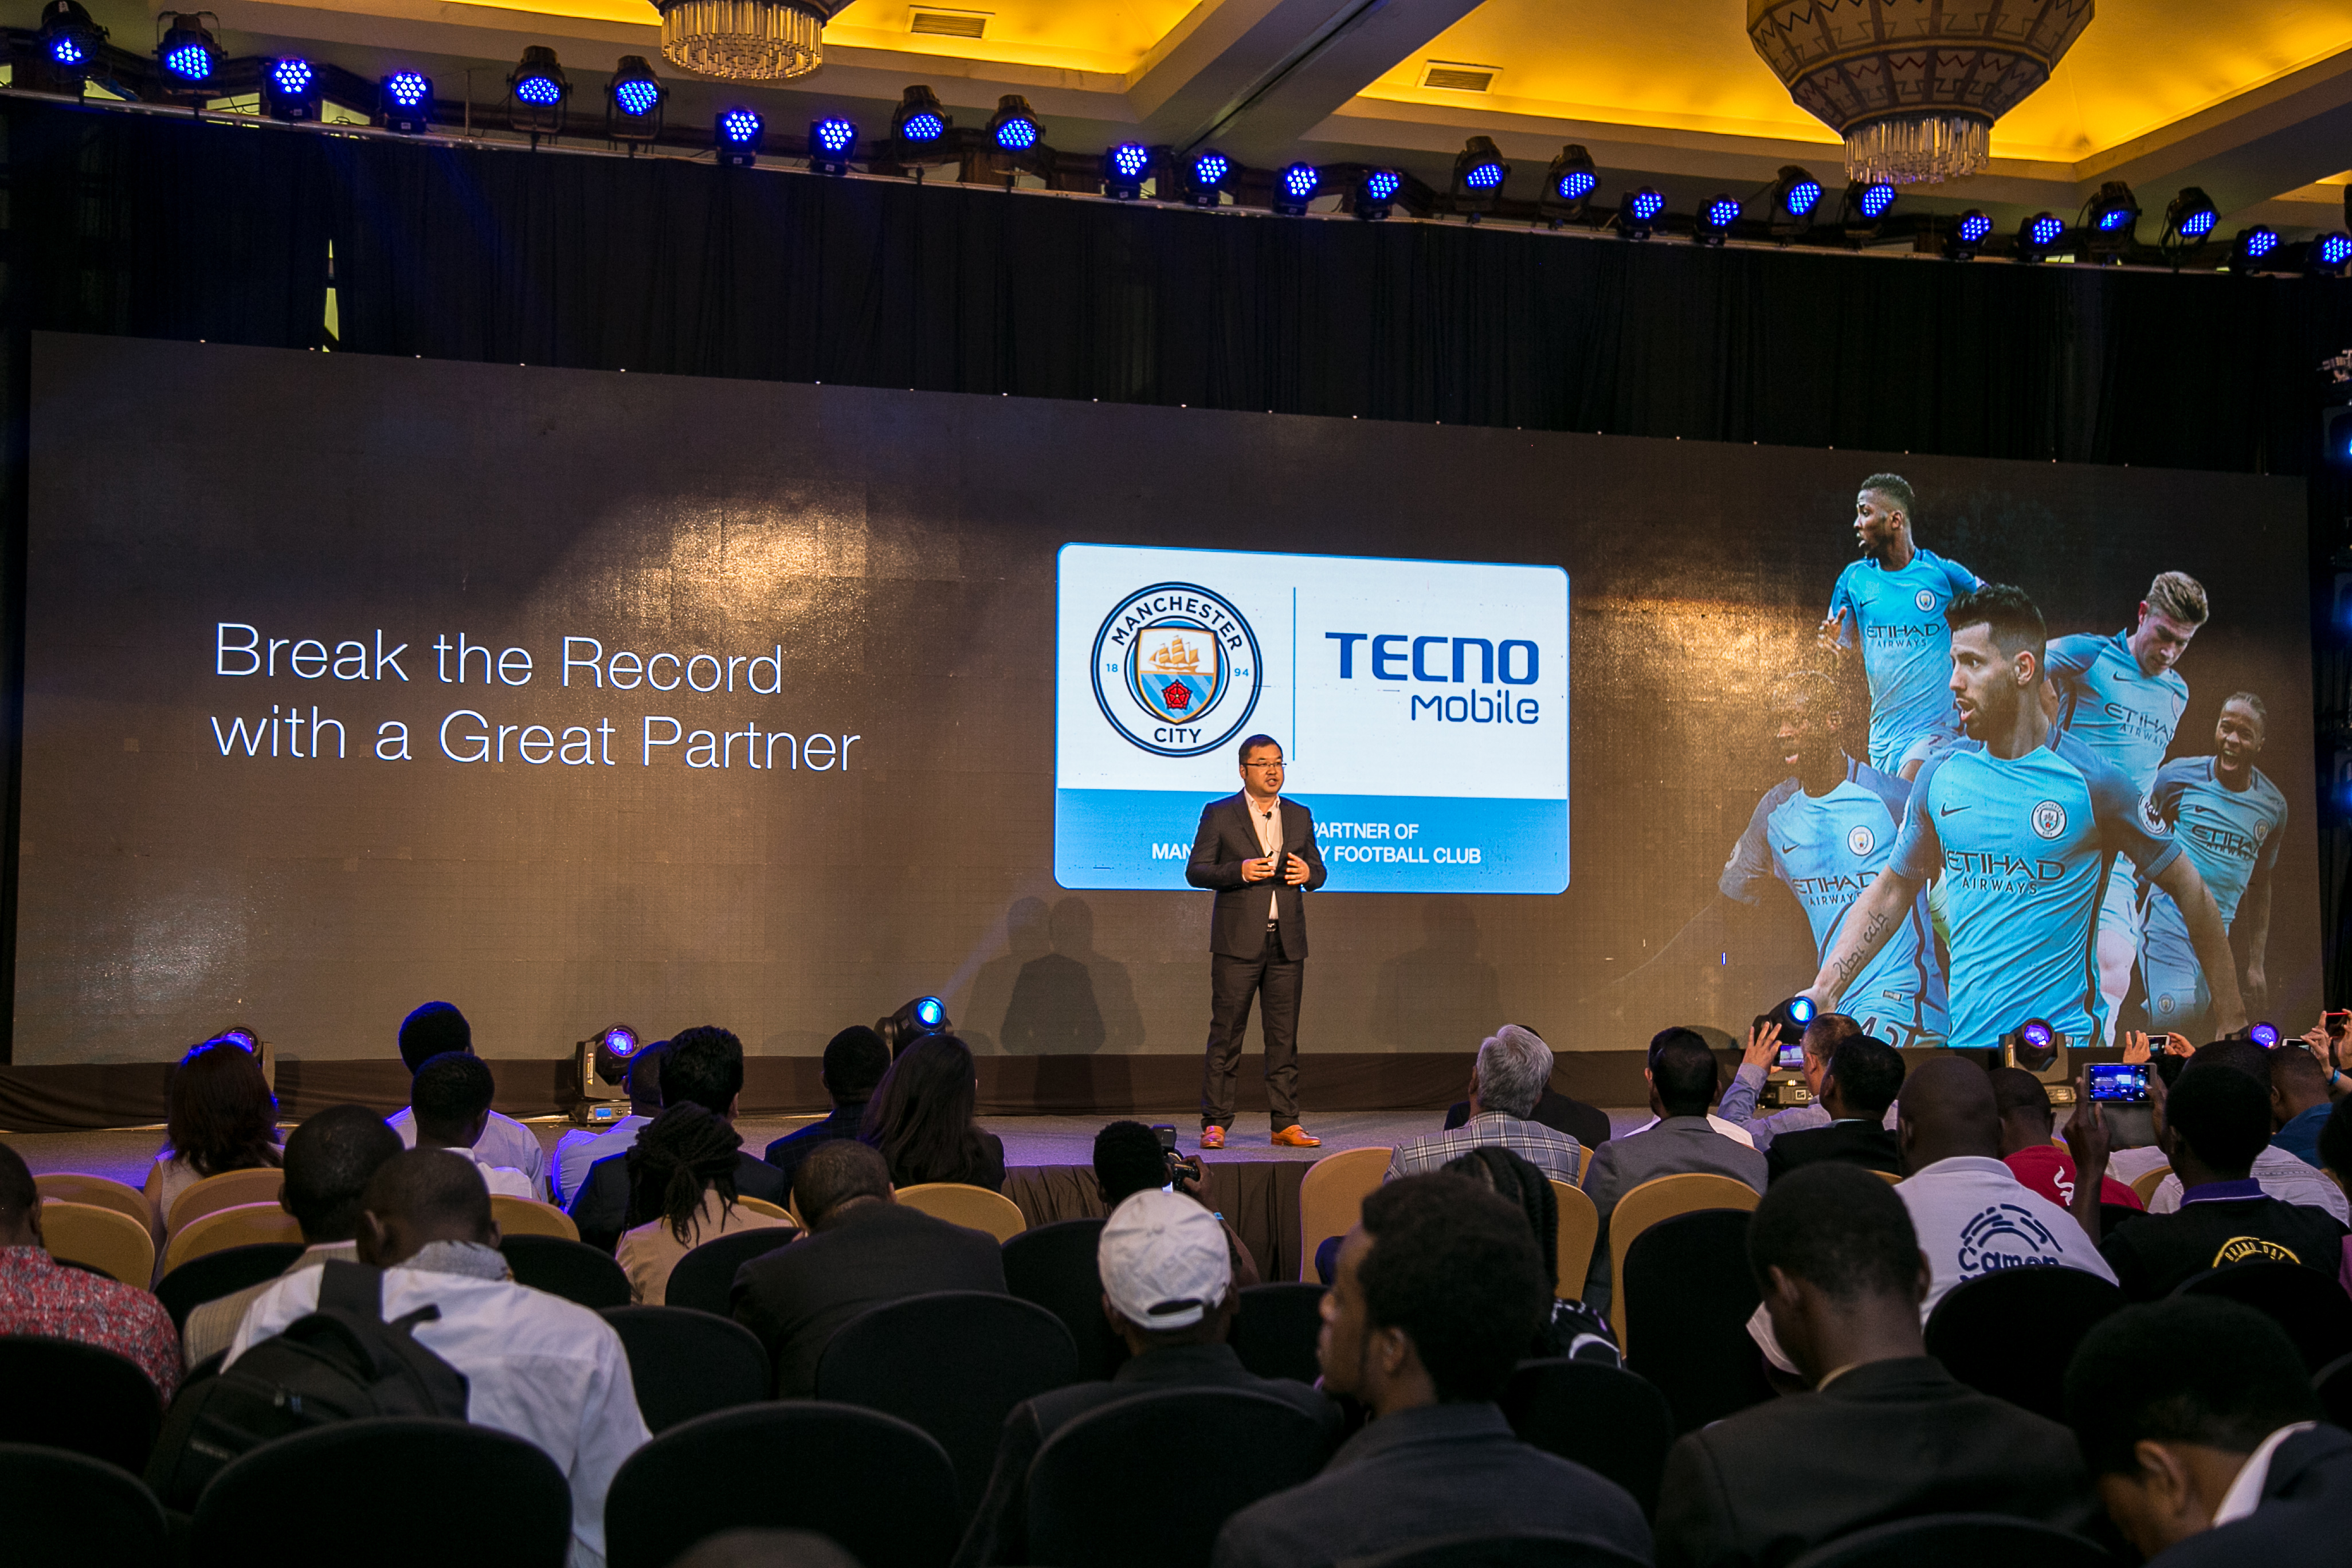 TECNO's new Camon CX is the ideal smartphone for all selfie lovers